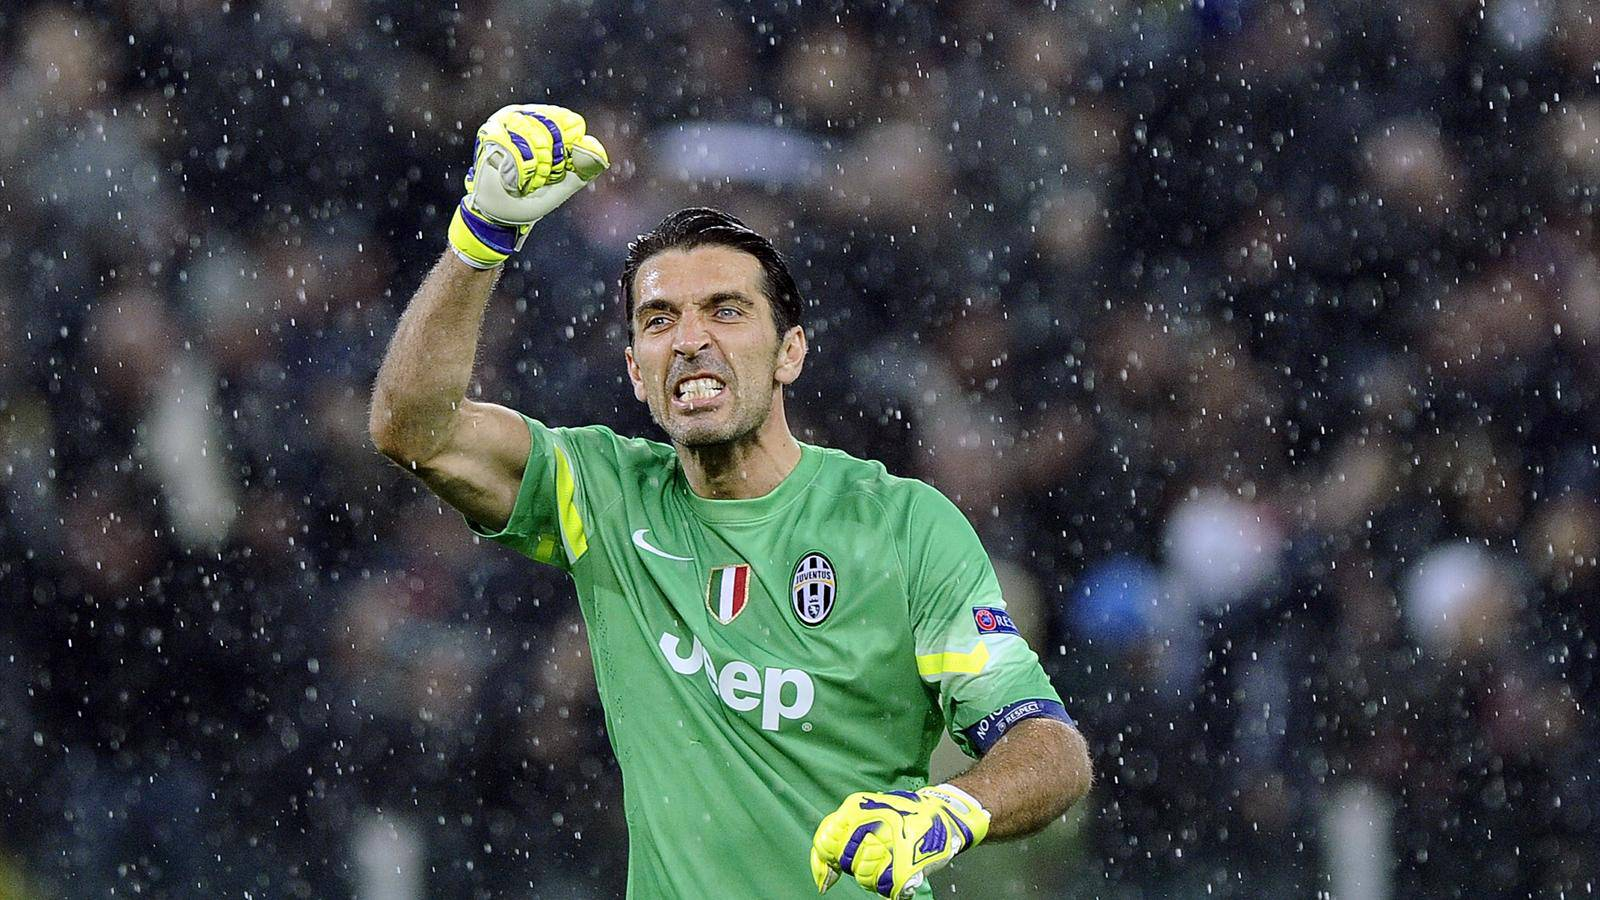 juventus, buffon insegue